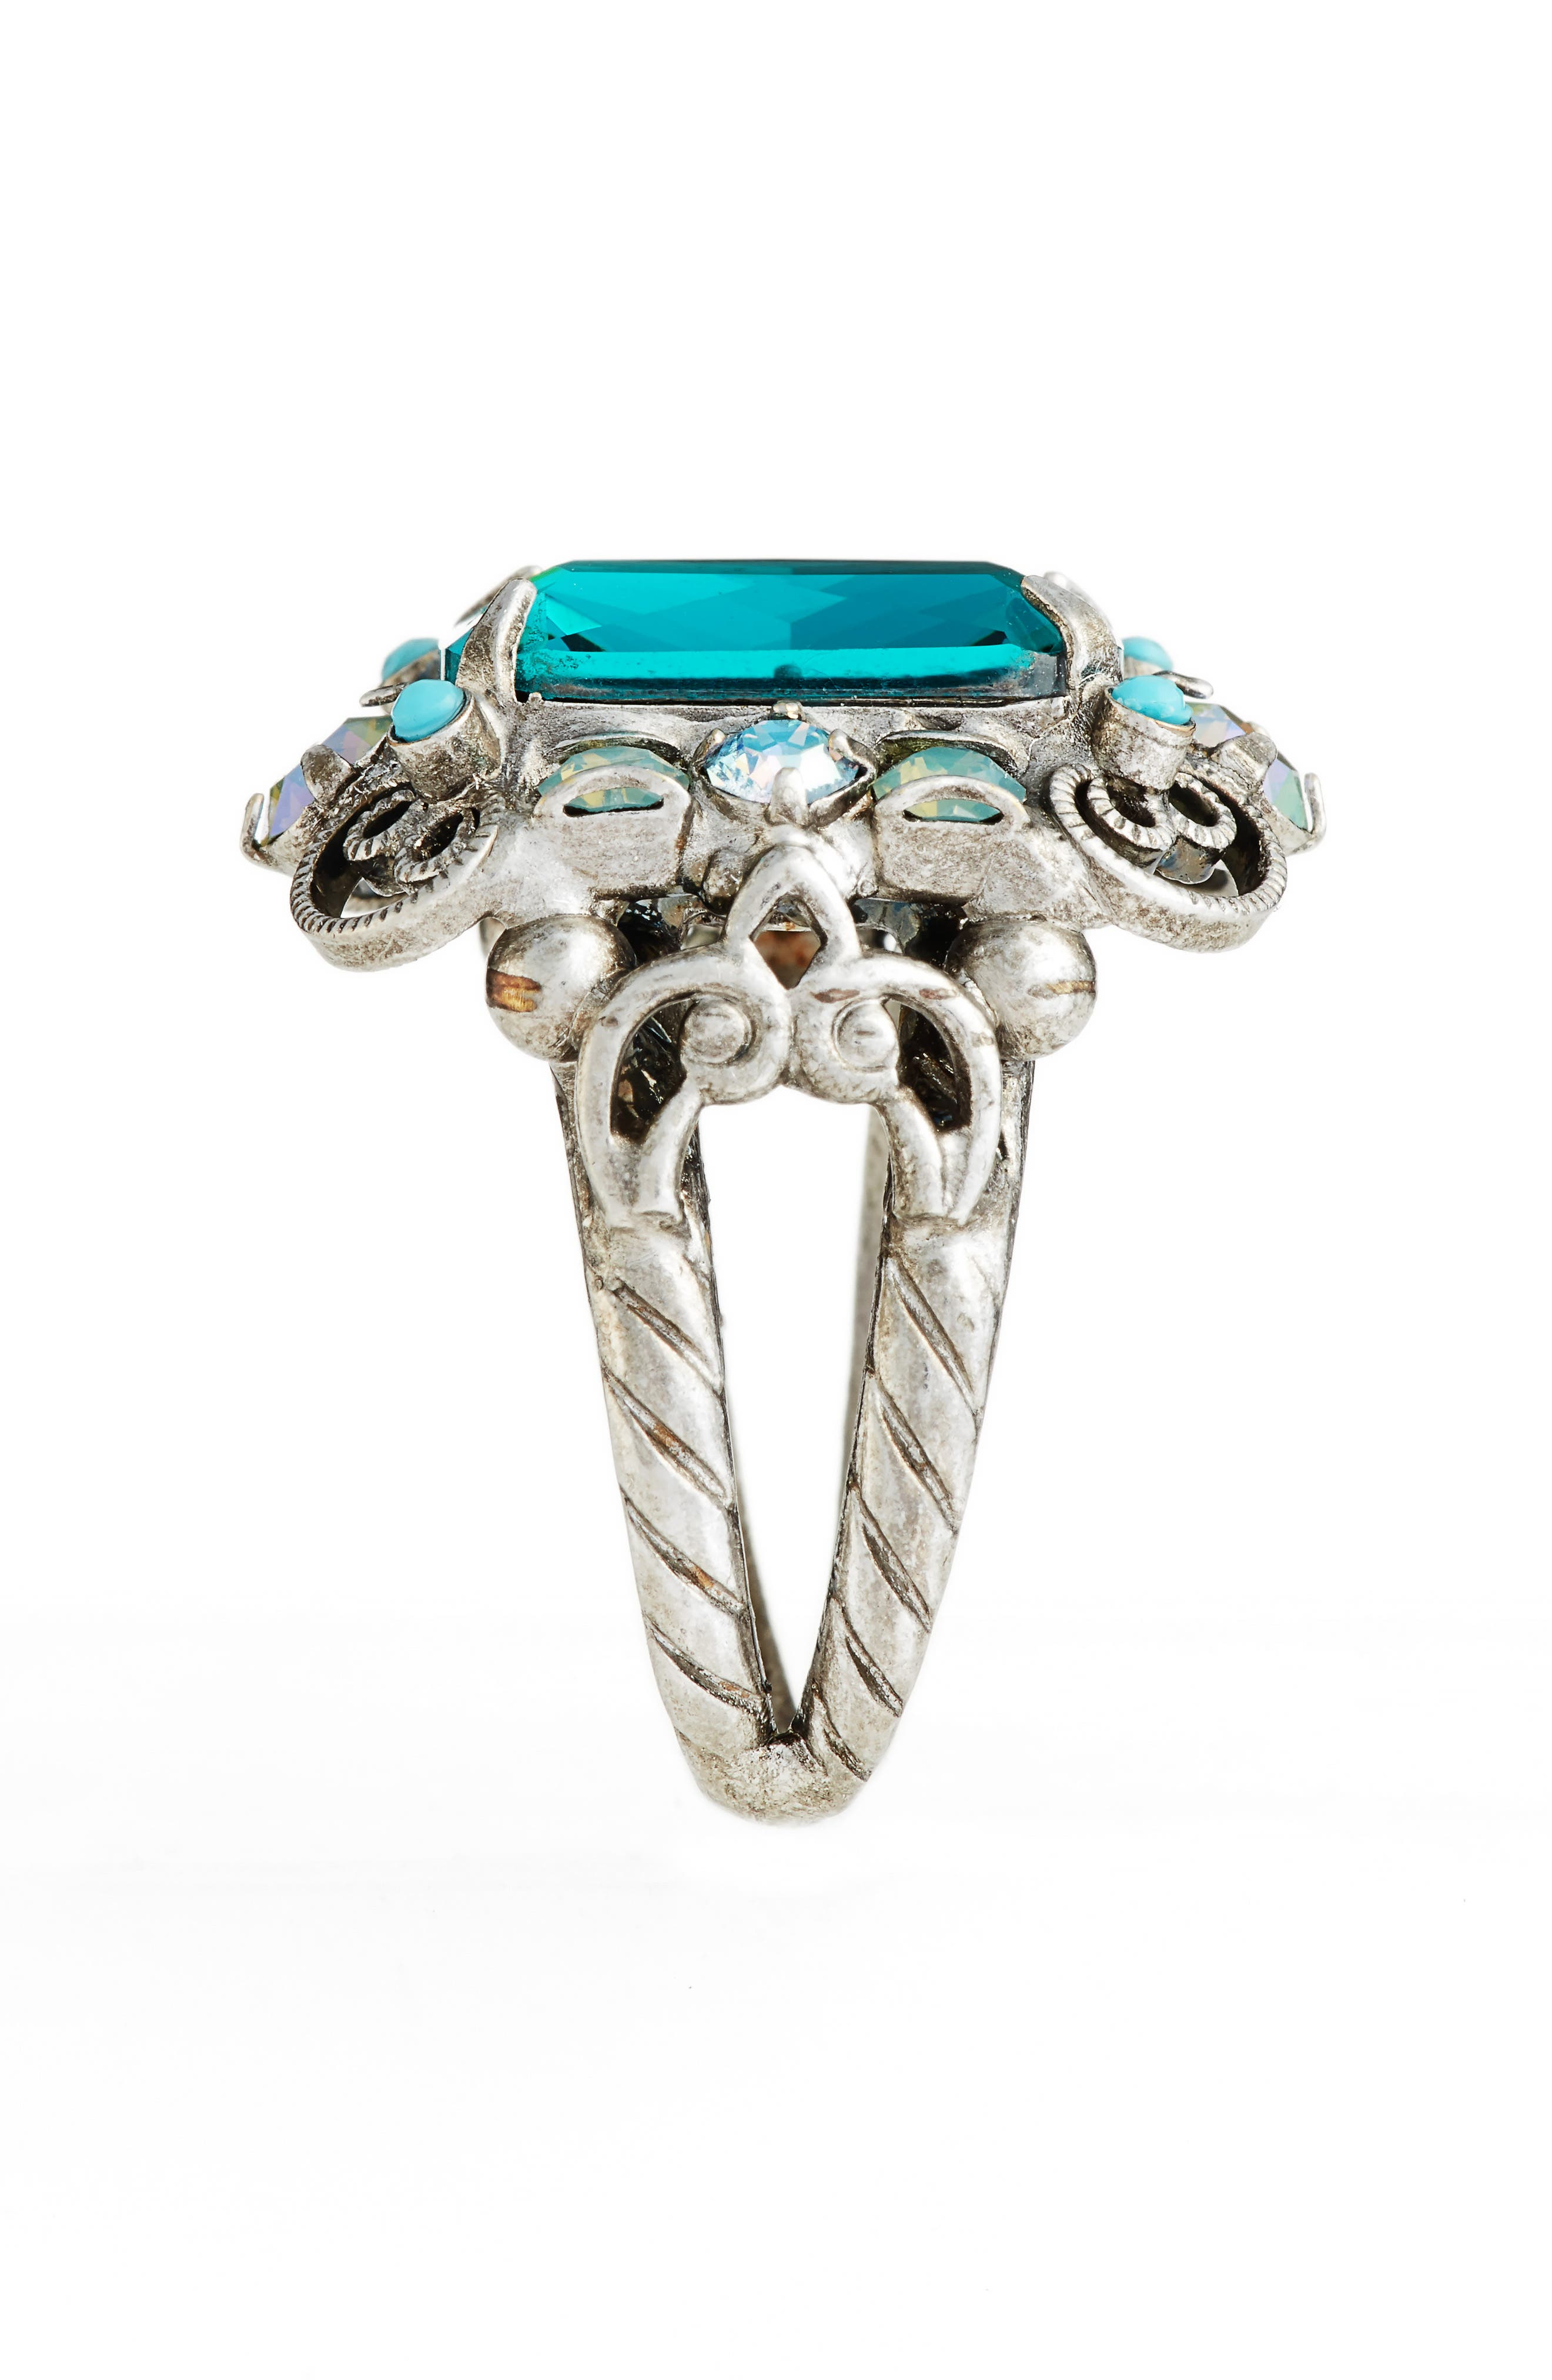 Sugar Maple Crystal Cocktail Ring,                             Alternate thumbnail 2, color,                             Blue-Green